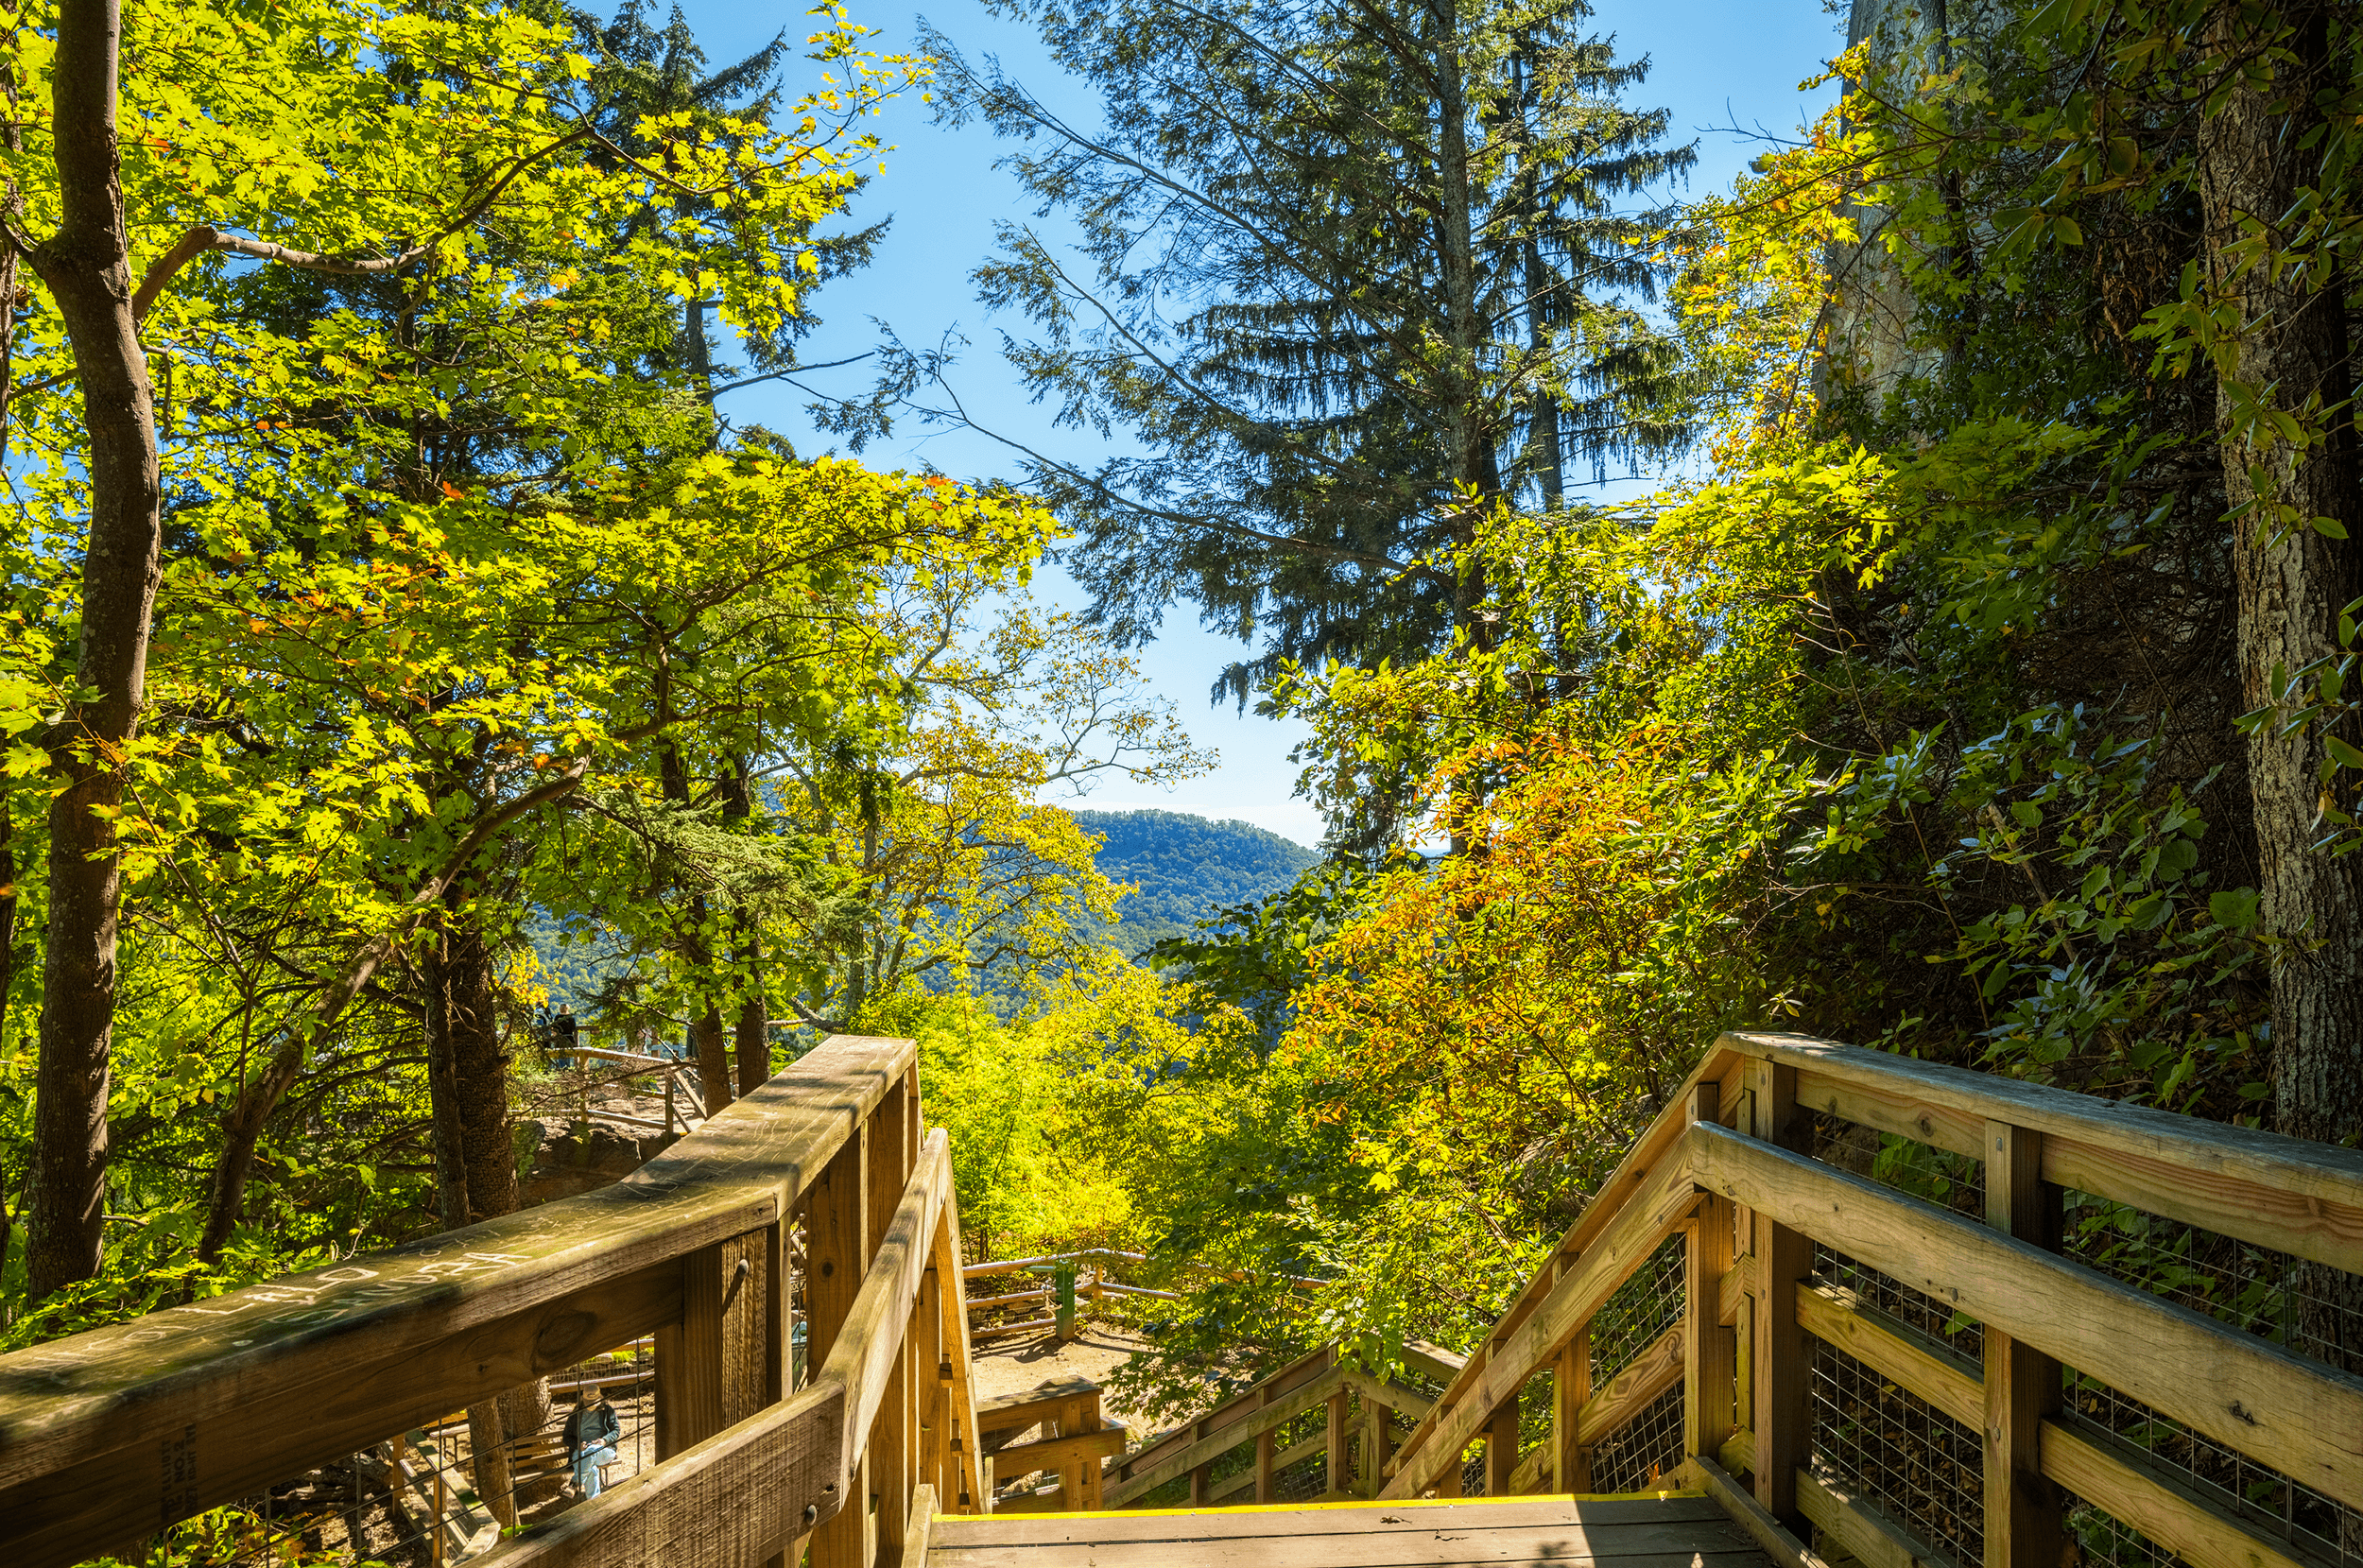 On your way down, there are many beautiful spots to savor. Below to the left is  Vista Rock .